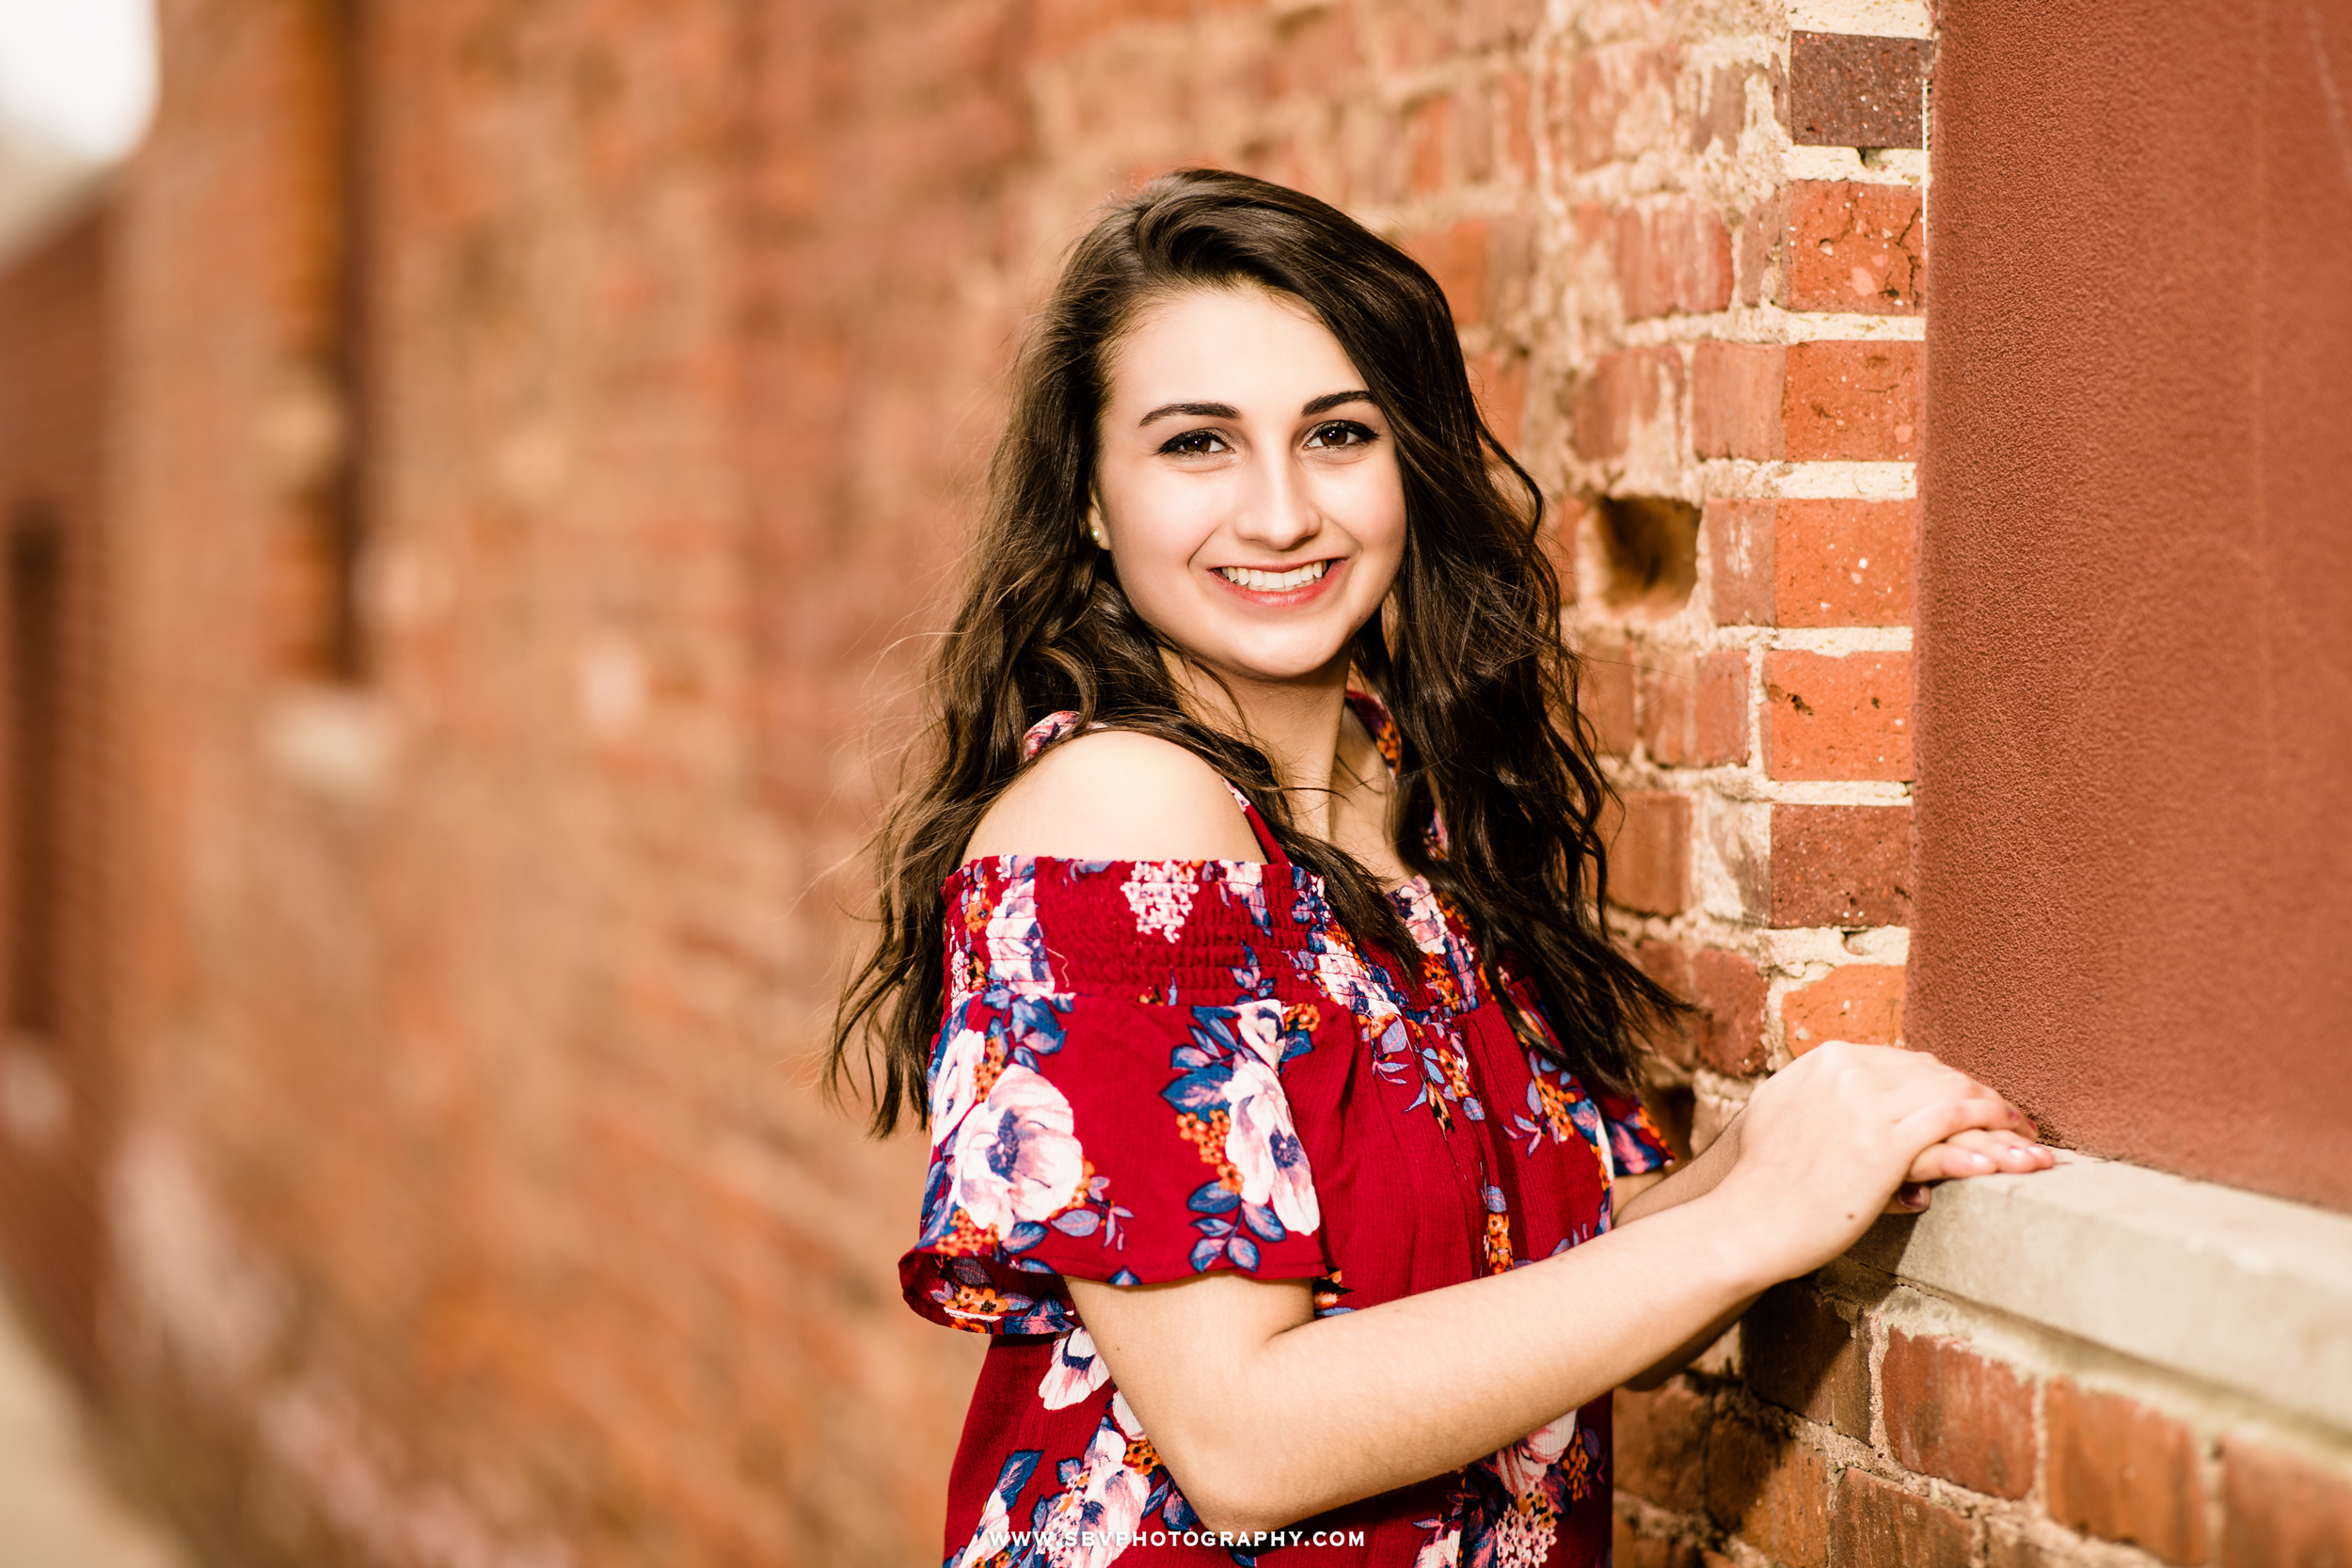 senior-girl-brick-wall.jpg